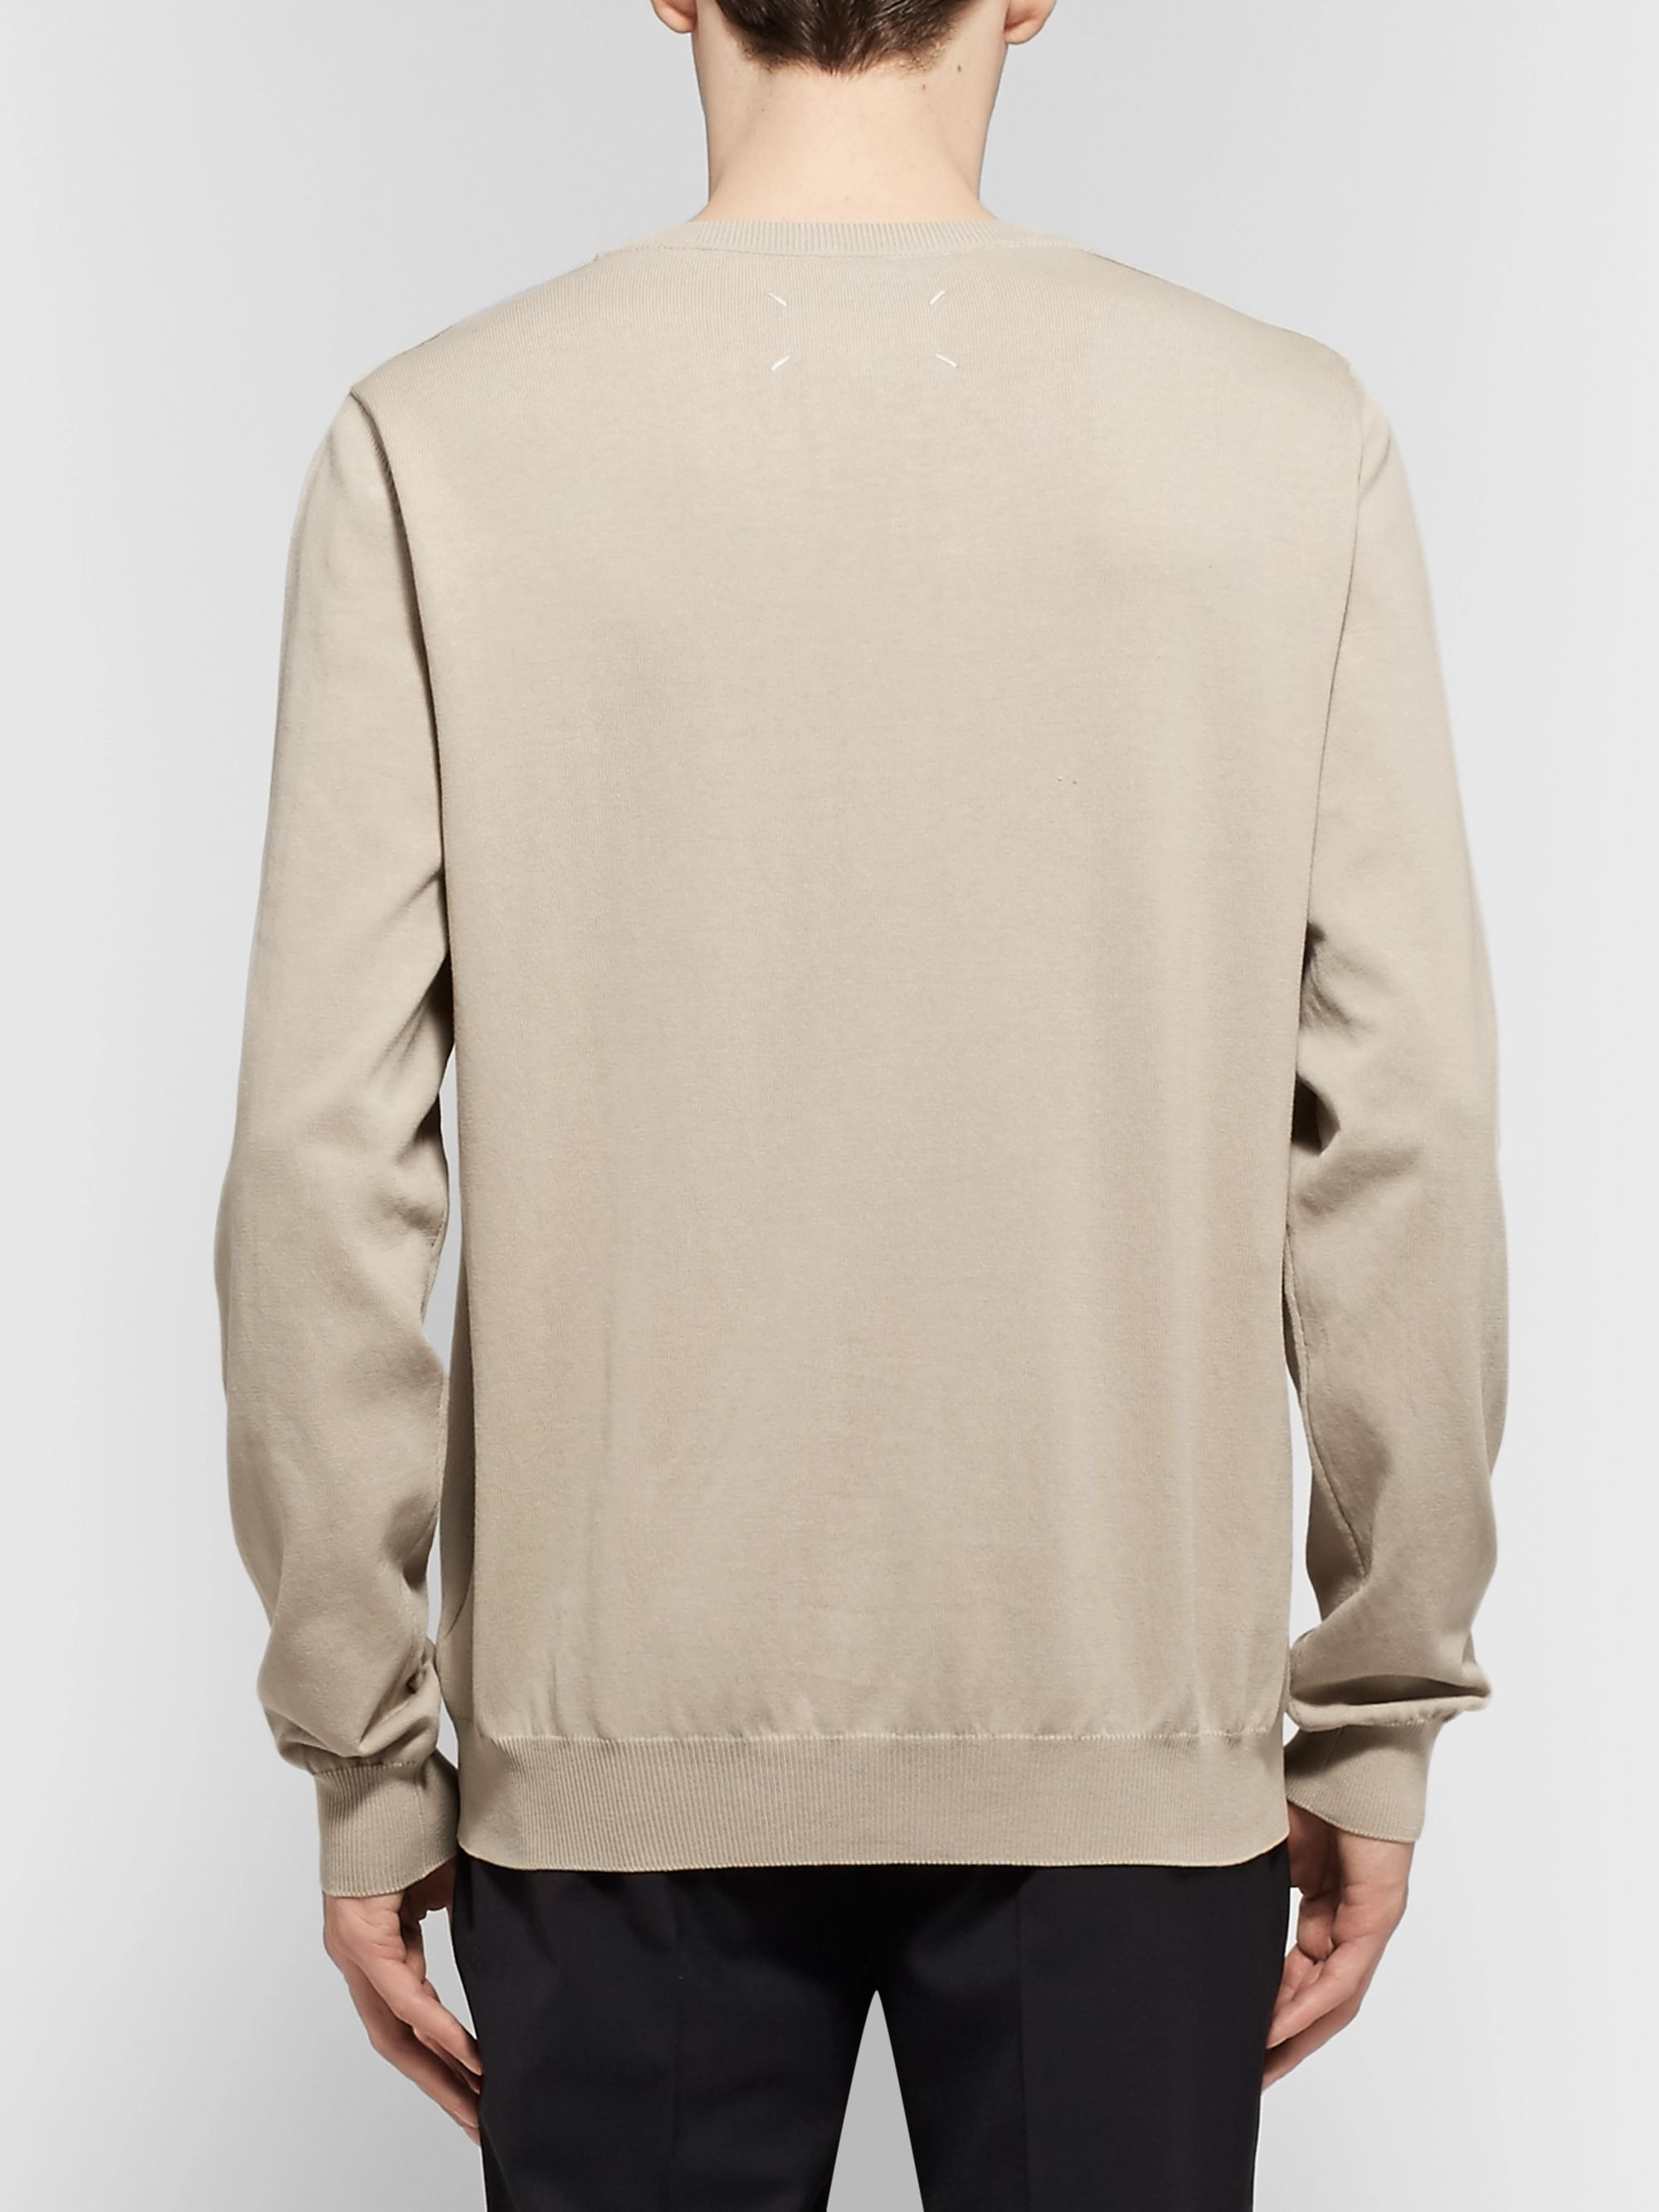 Maison Margiela Shell-Trimmed Cotton Sweater